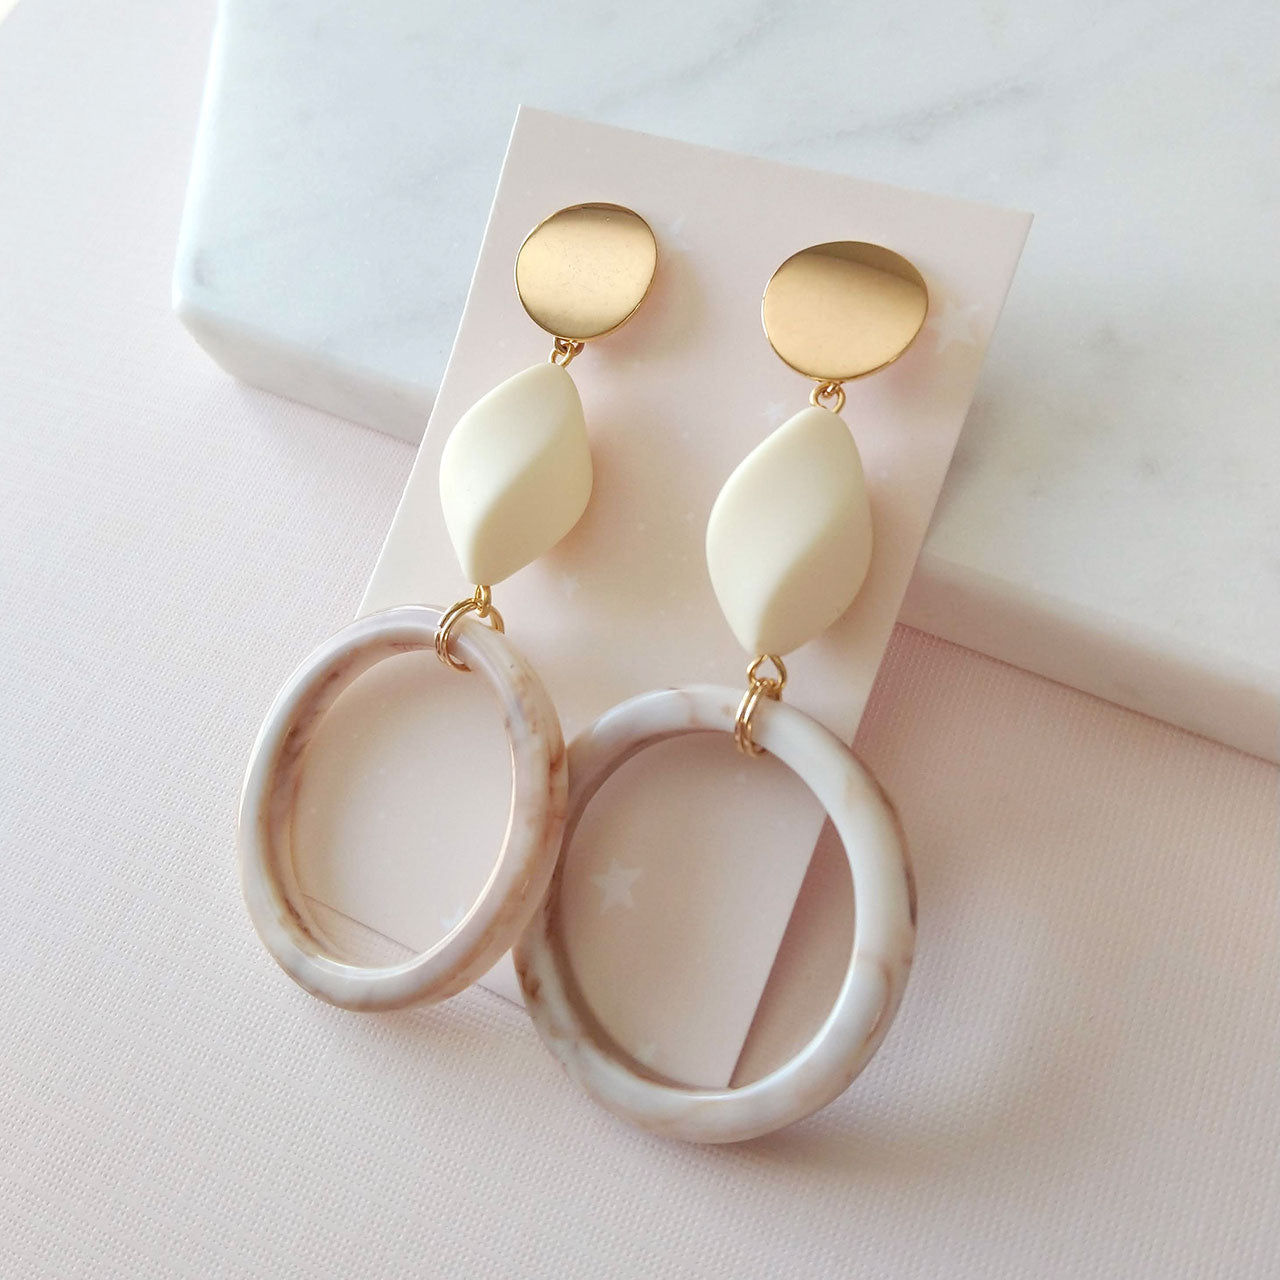 acrylic hoops earrings in beige cream and golden tones